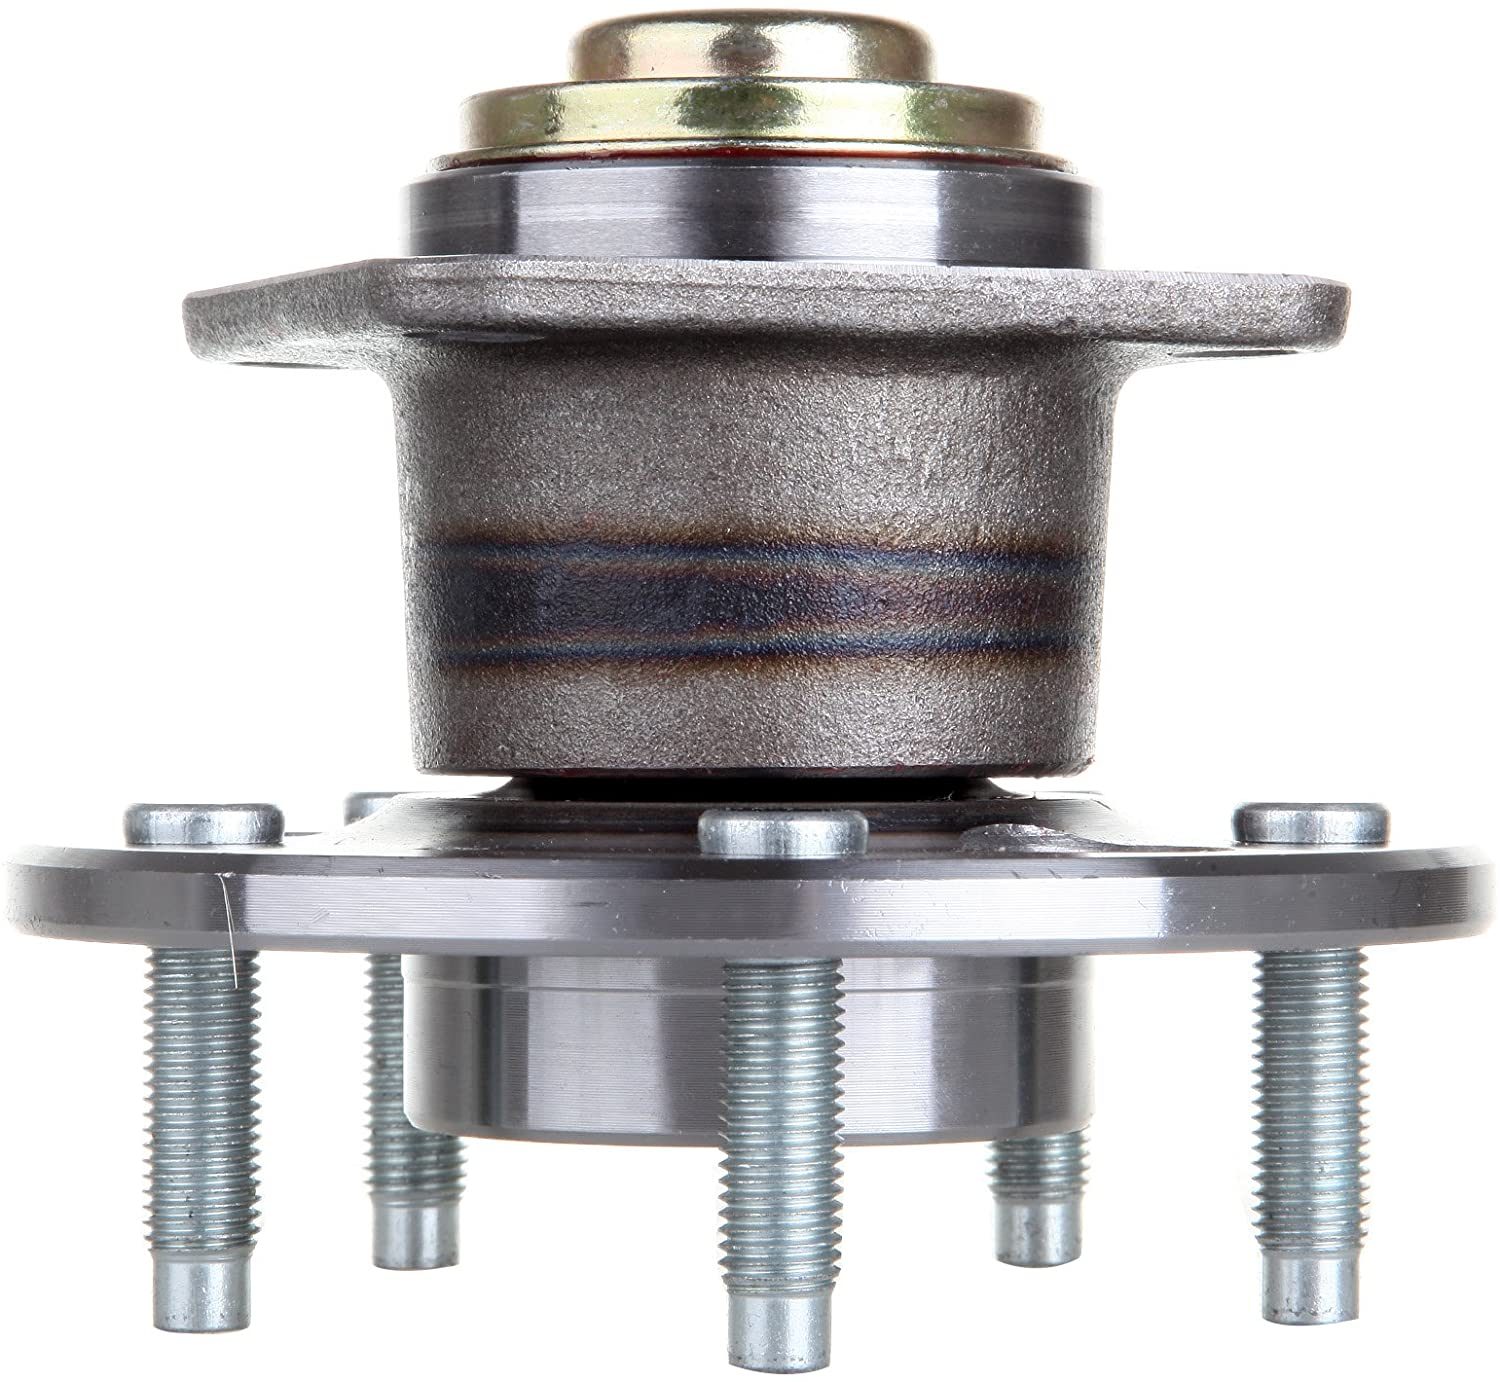 ECCPP Replacement for Wheel Bearing Hub 513018 Hub Bearing Assembly Hub Assemblies Rear Axle 5 Lugs for Buick Cadillac For Chevrolet